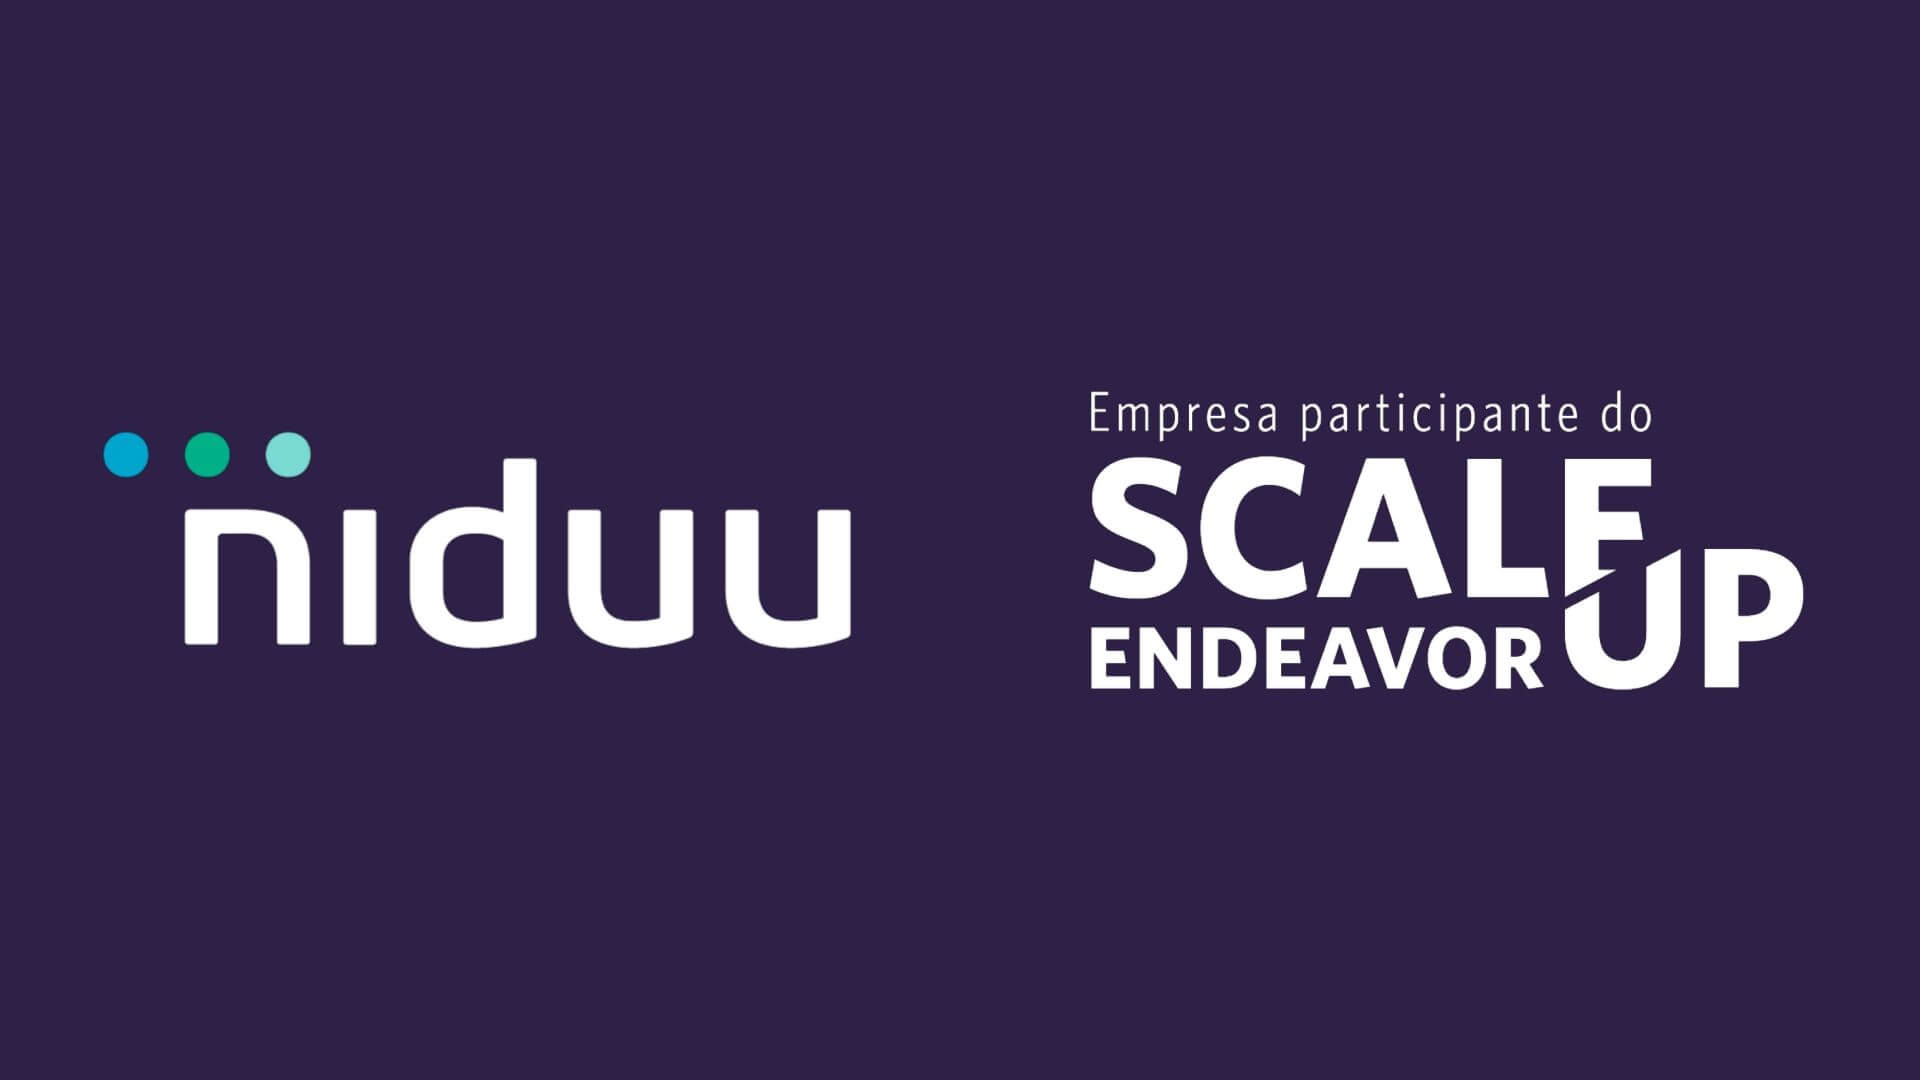 Niduu é Scale-Up Endeavor 2019